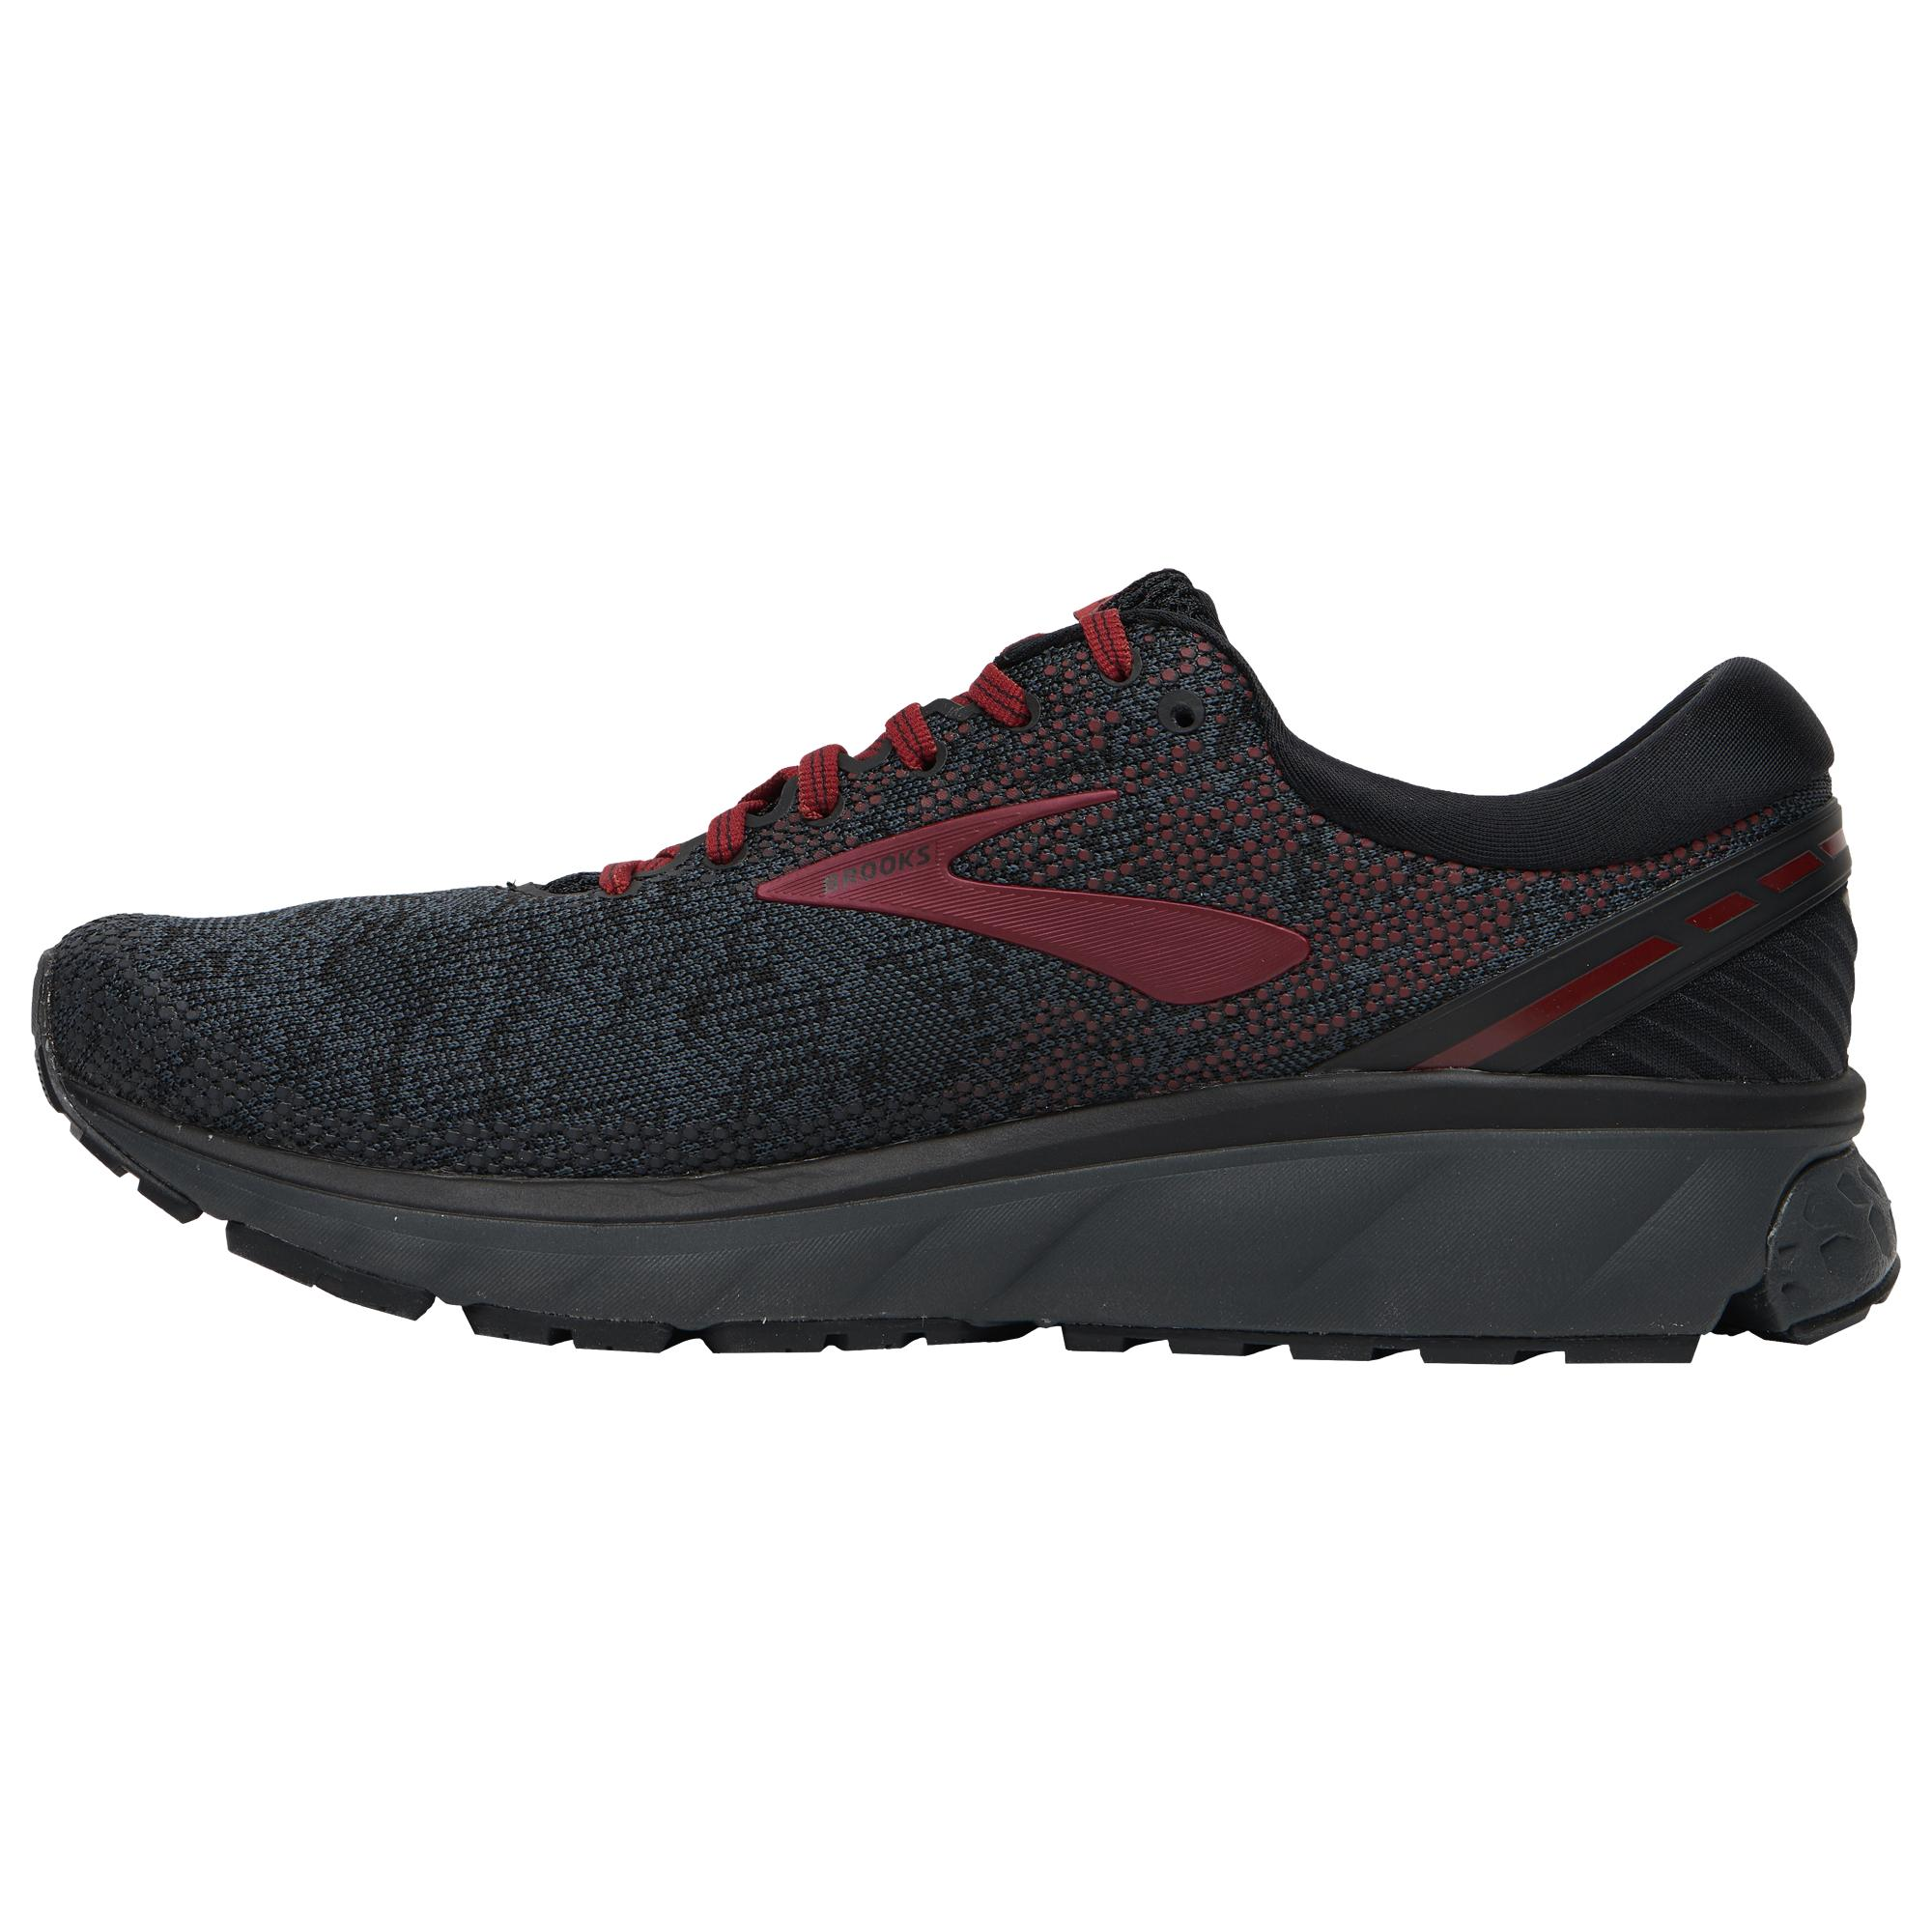 Brooks Rubber Ghost 11 in Black/White